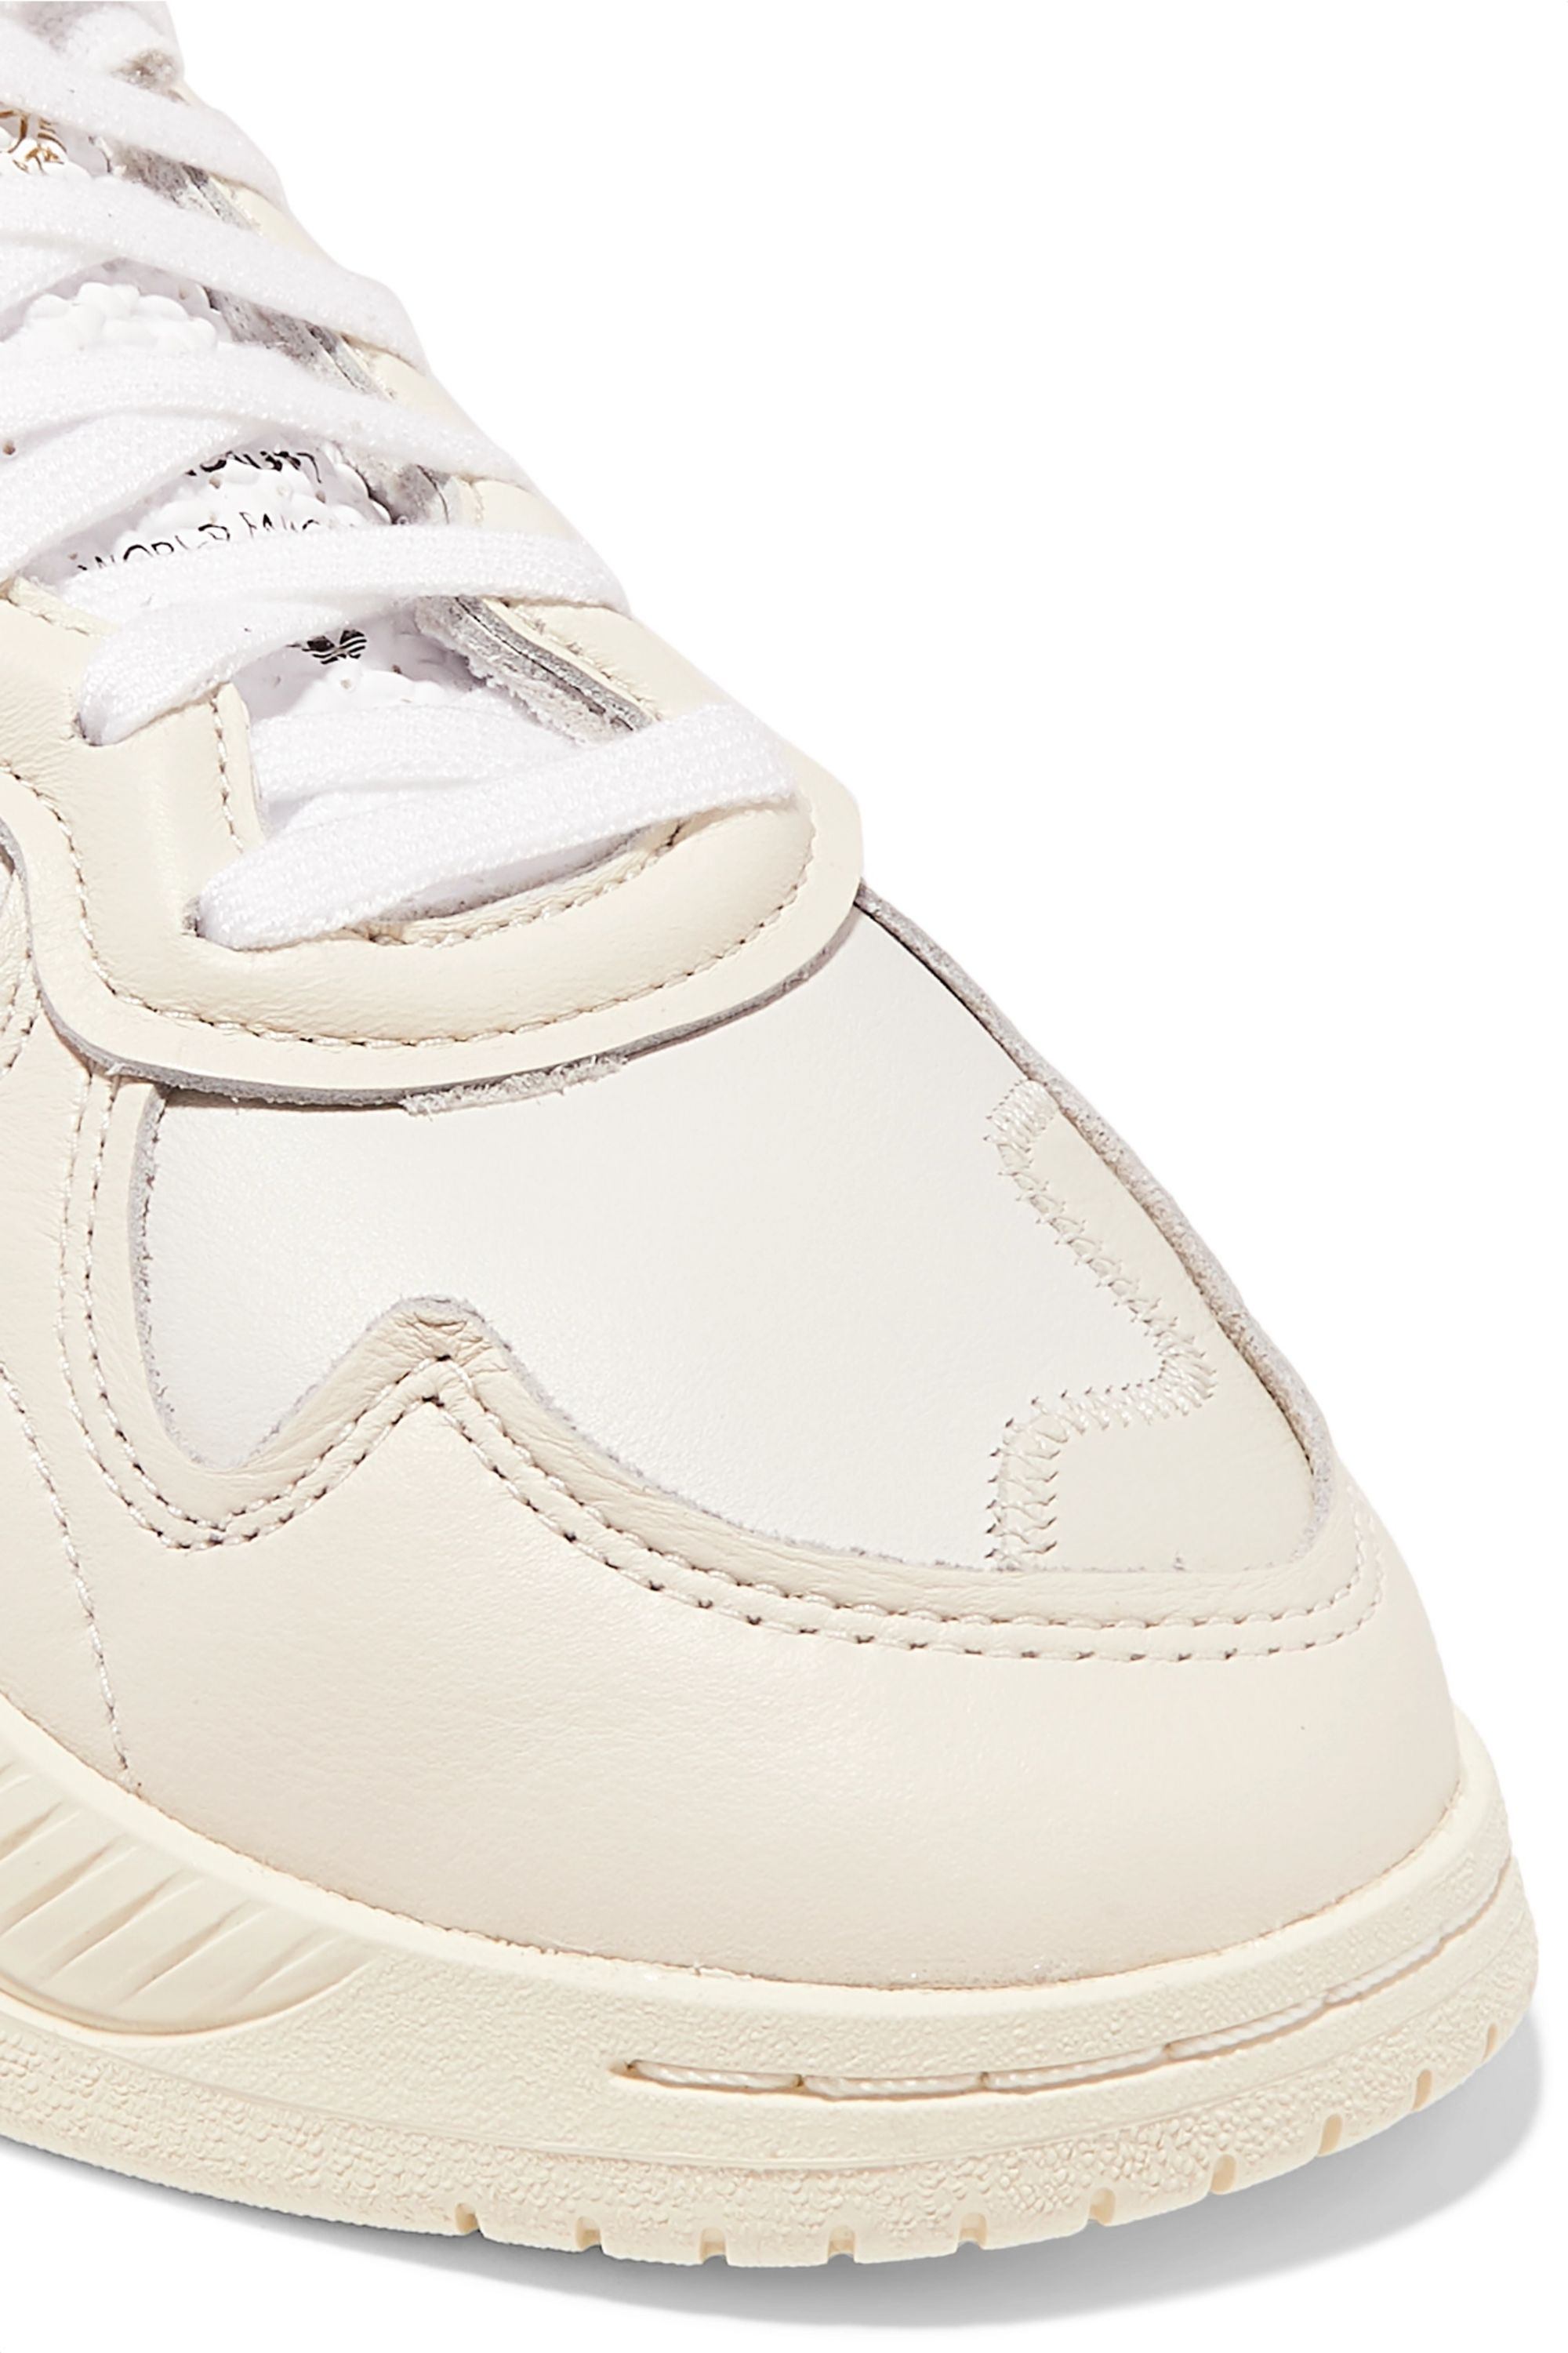 adidas Originals Supercourt RX leather sneakers